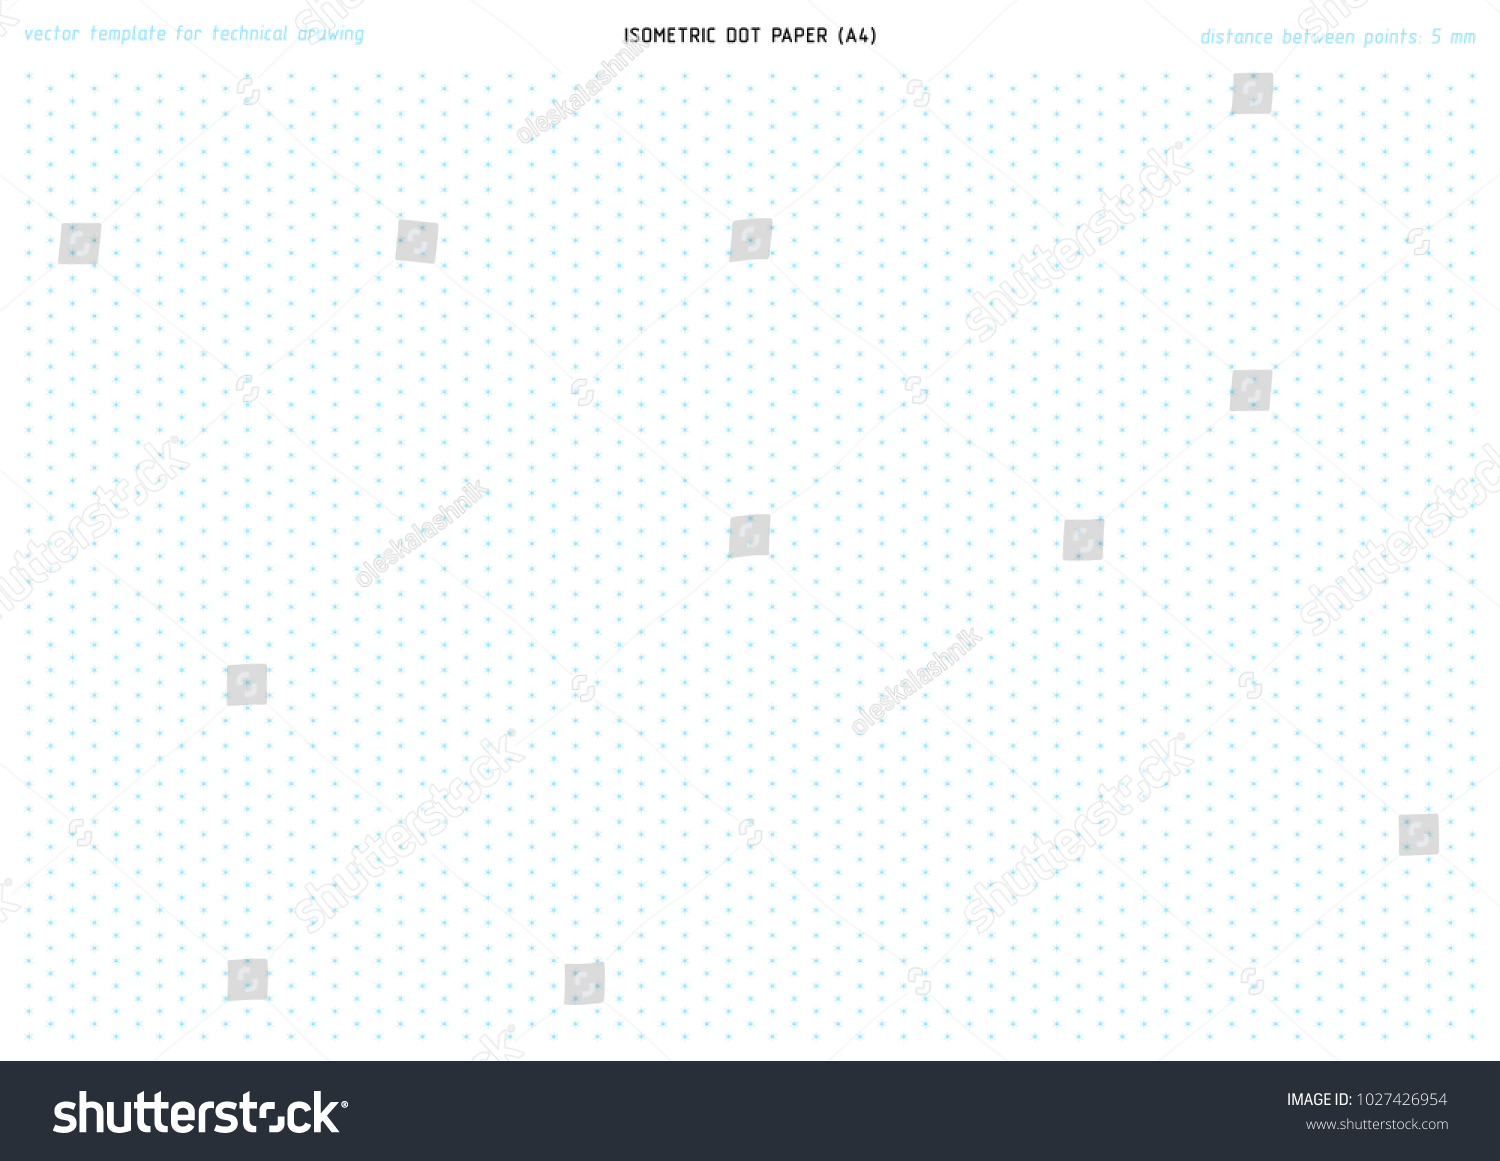 Printable Isometric Dot Paper Vector Pattern Stock Vector (Royalty ...